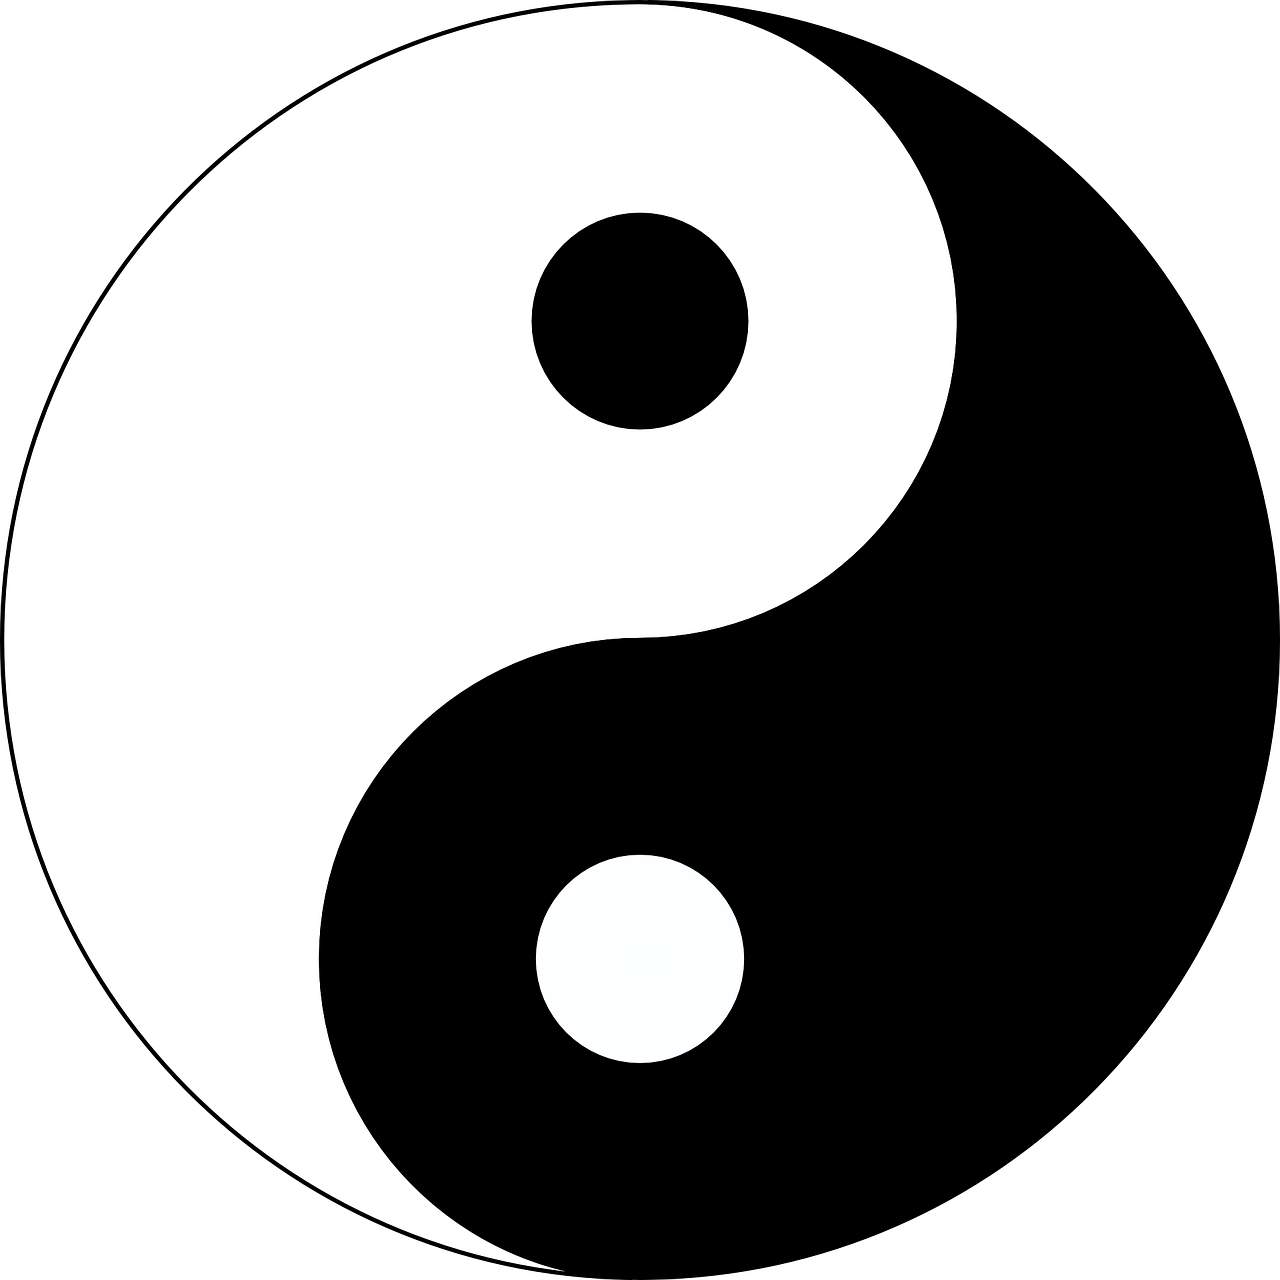 yin yang yin-yang free photo